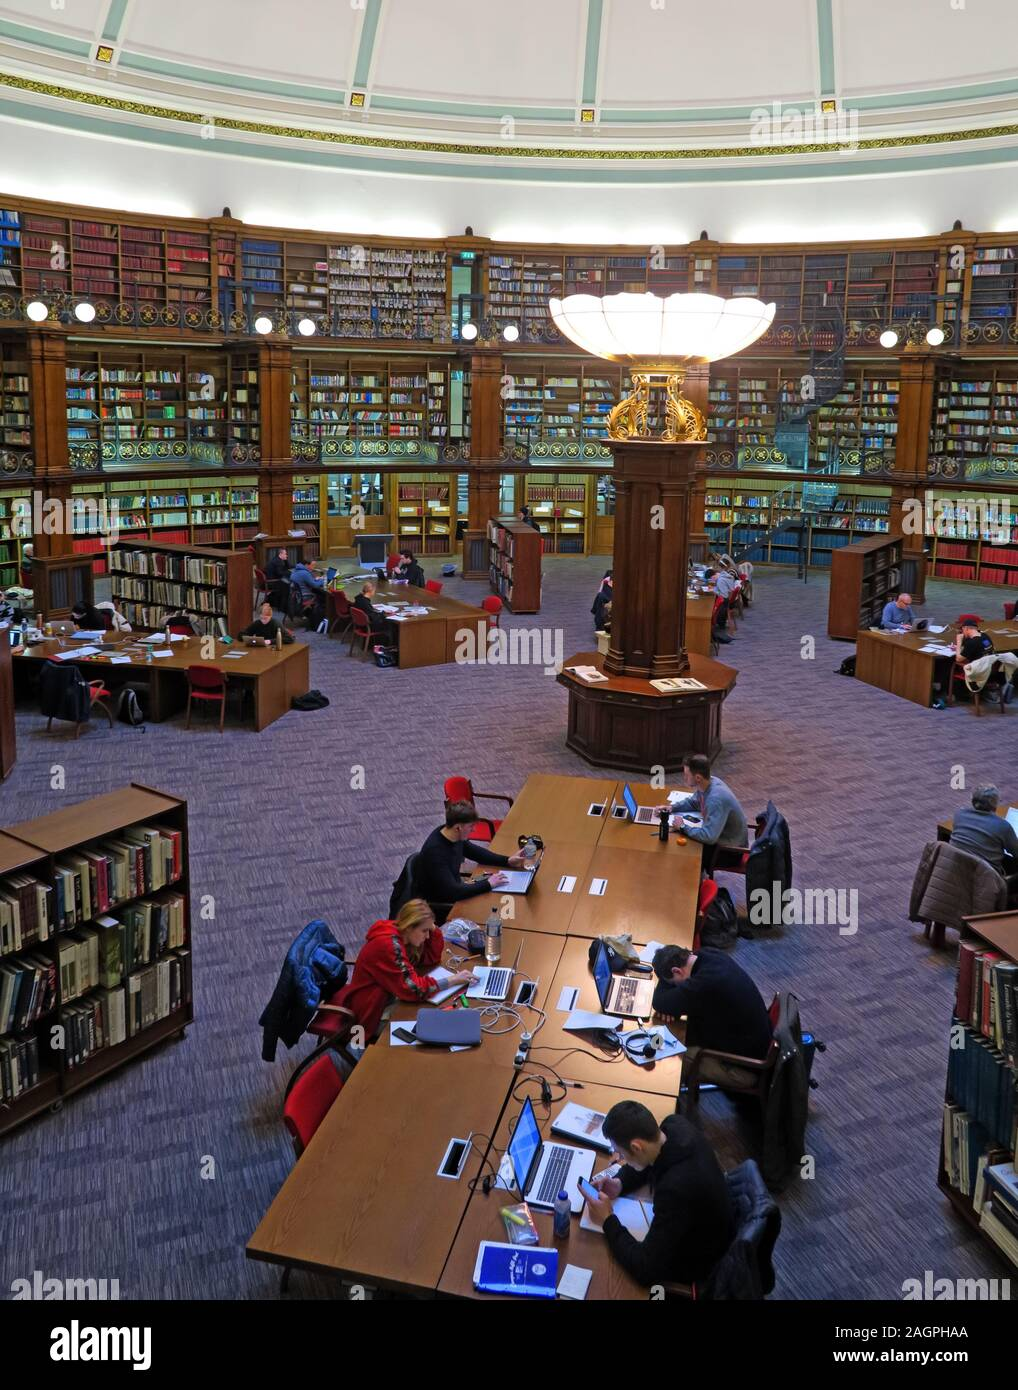 Dieses Stockfoto: Leser in Liverpool Central Library, William Brown St, Liverpool, England, UK, L3 8EW - 2AGPHA